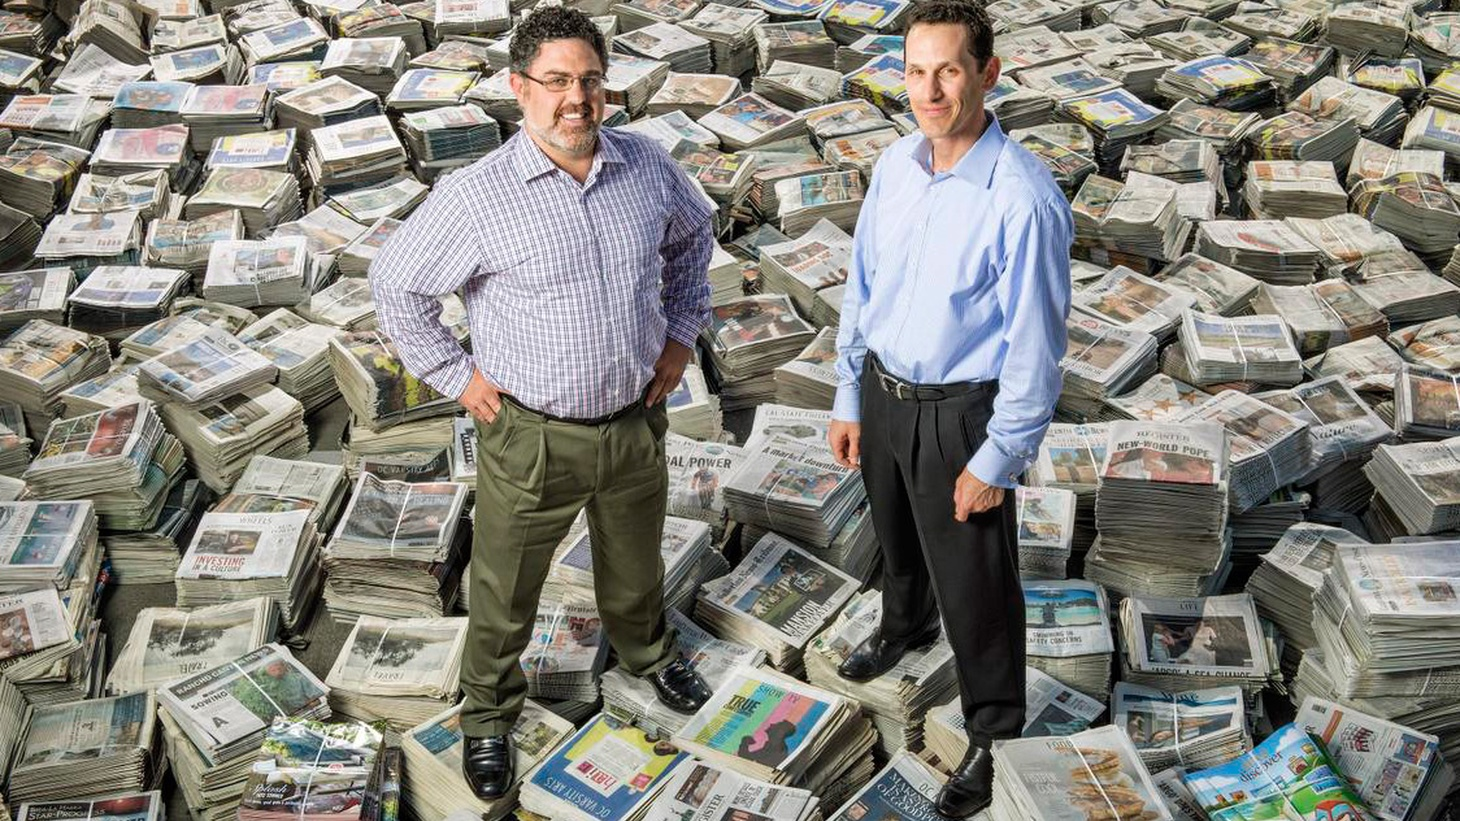 """The """"white knight"""" who rode in to rescue the Orange County Register three years ago has resigned all executive duties. Where did Aaron Kushner go wrong? What's in store for readers of the Register, the Riverside Press Enterprise — and the LA Times, which reportedly wants to buy UT San Diego, even though Times' profits are down by 54%? We look at print journalism's local future."""